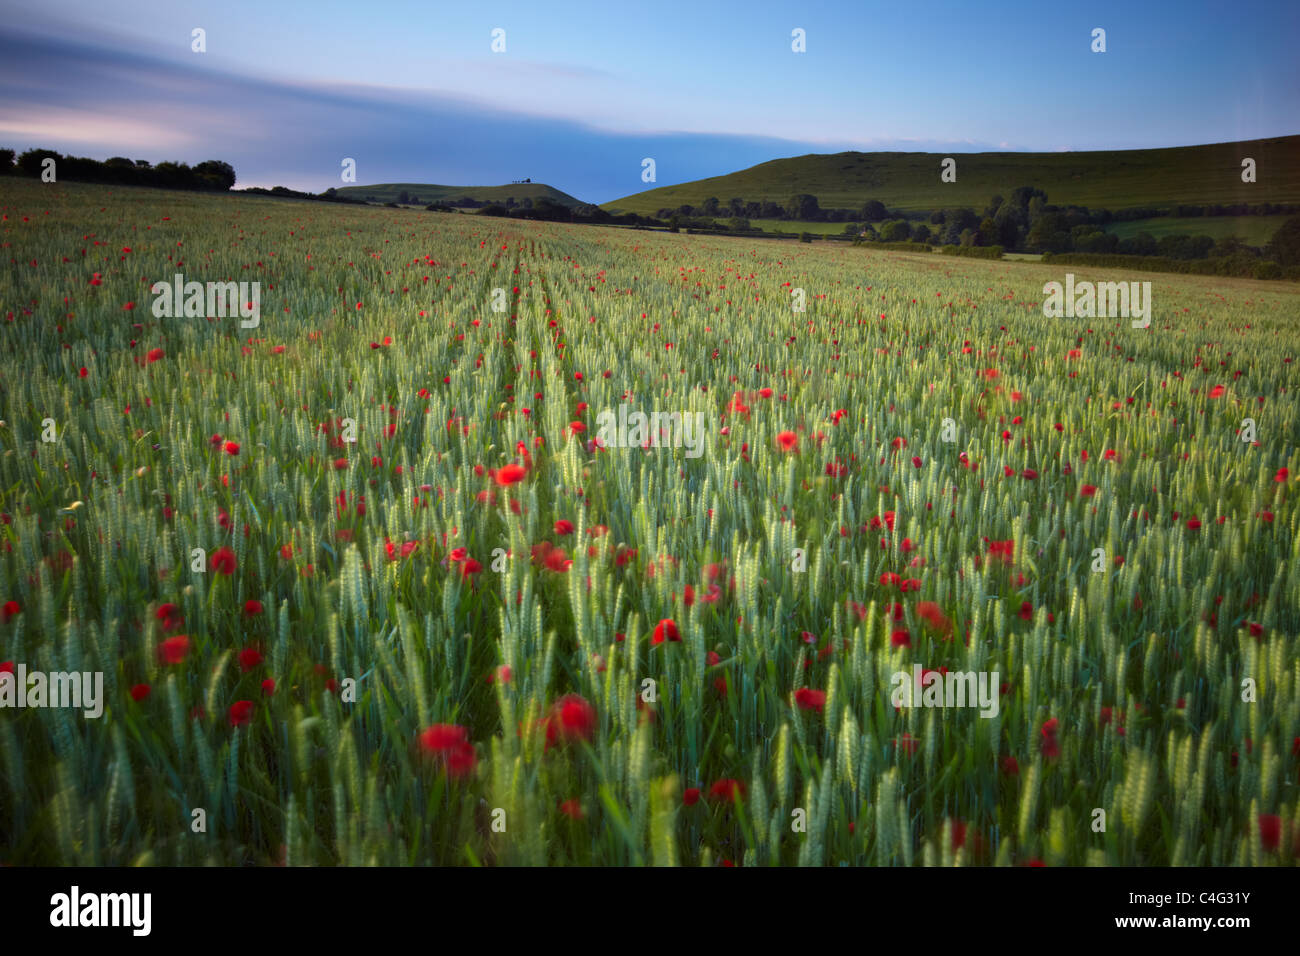 poppies blowing in the breeze on a summer's evening, Corton Denham, Somerset, England, UK - Stock Image